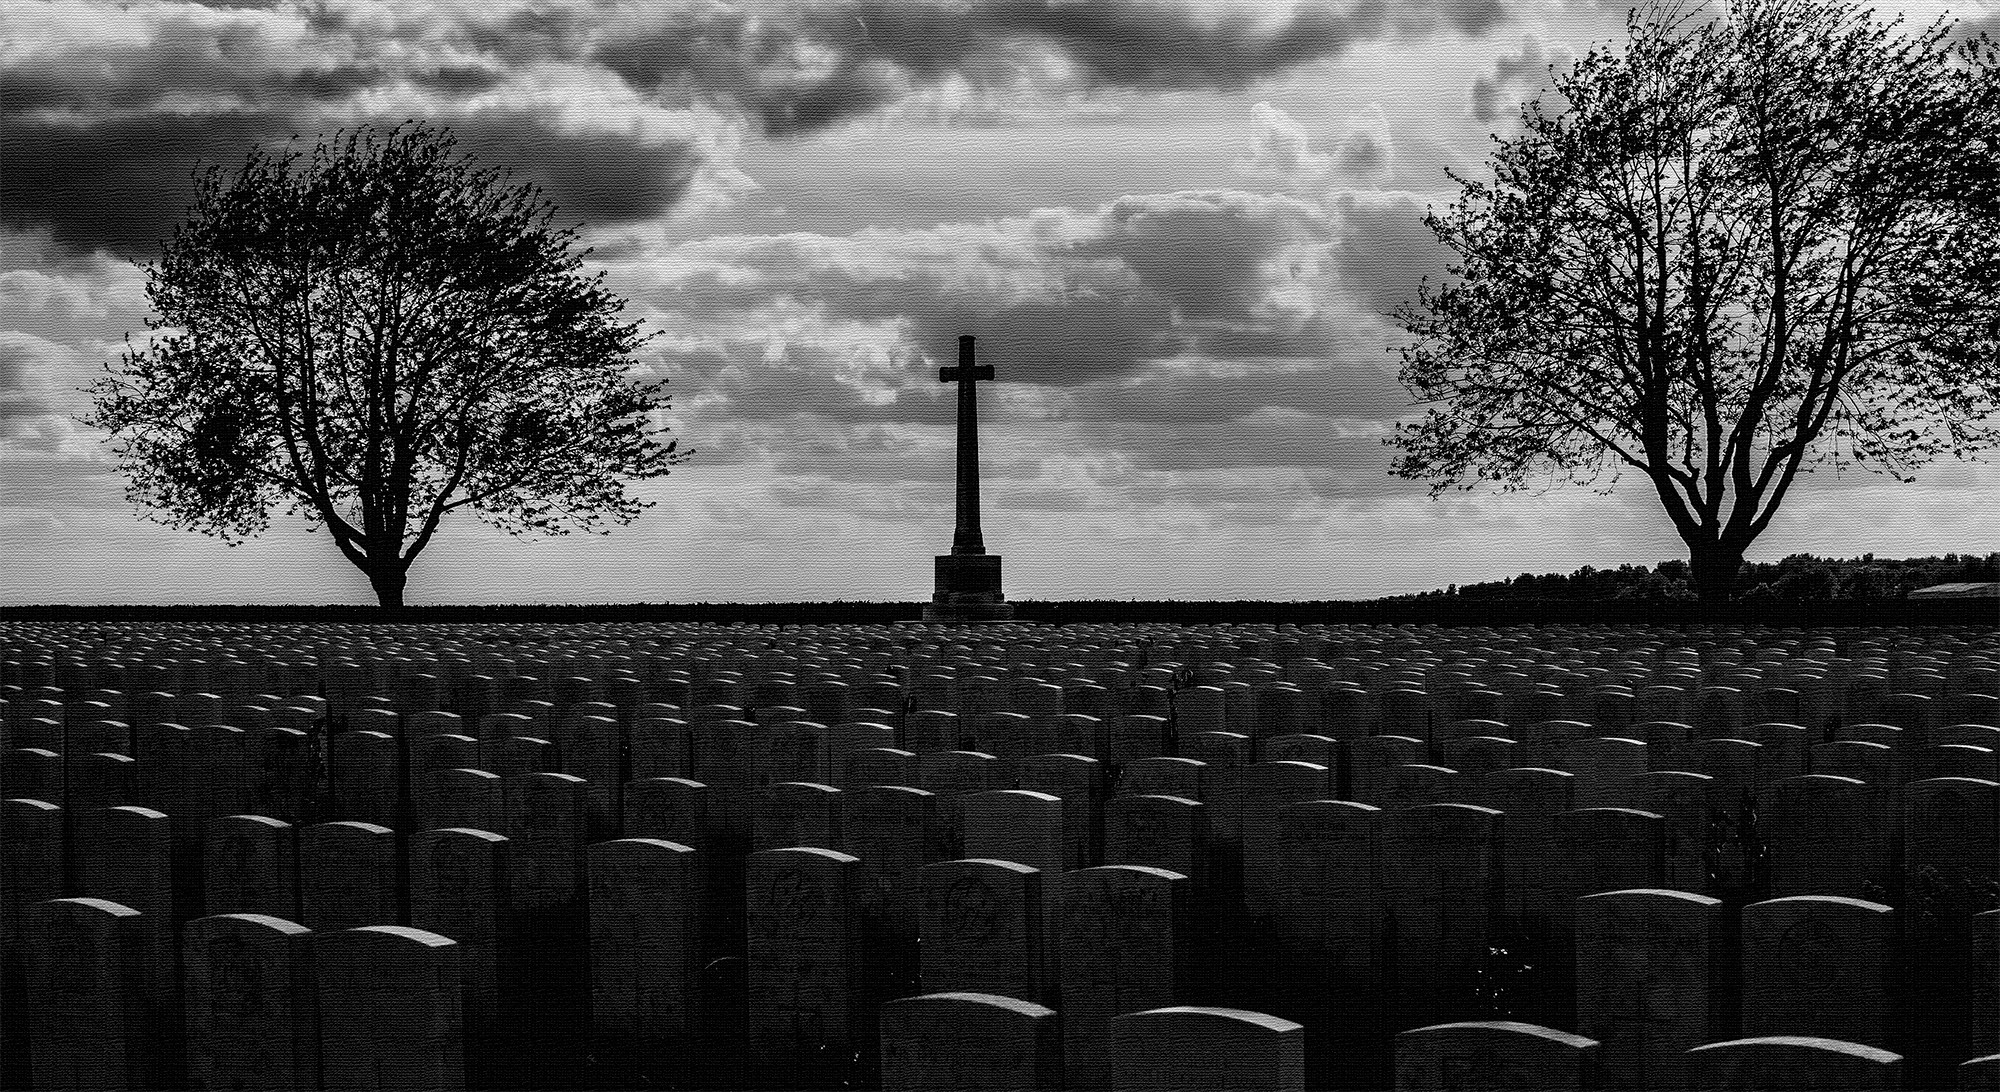 Caterpillar Valley Cemetery, Longueval, France, where 5573 Commonwealth burials and commemorations are contained.